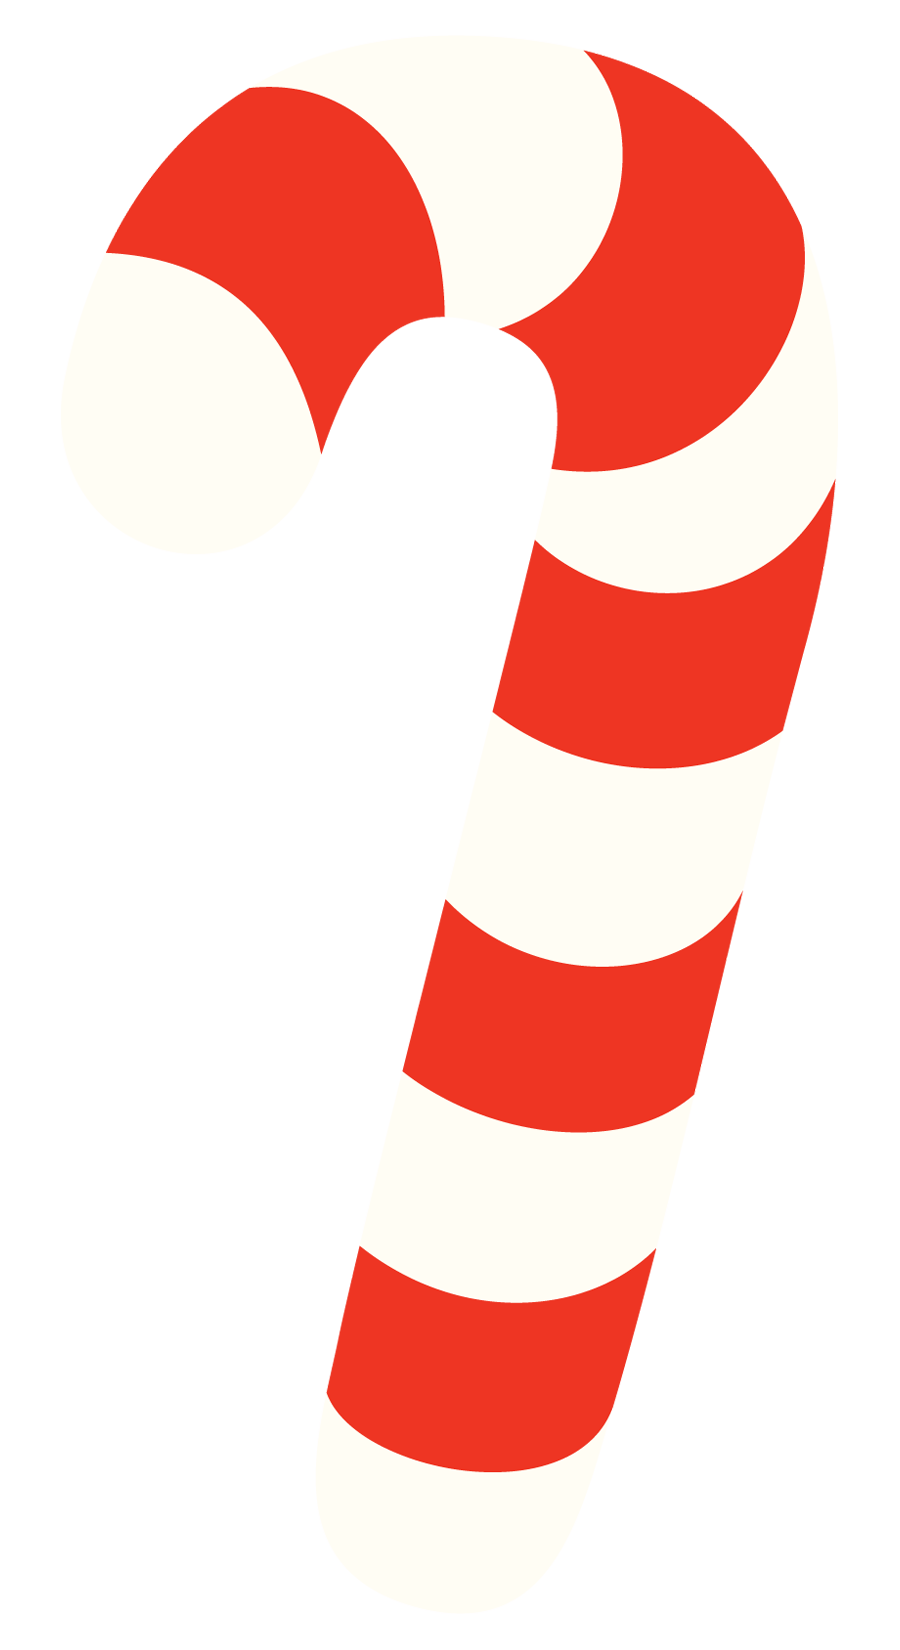 Candy Cane clipart A are an & of